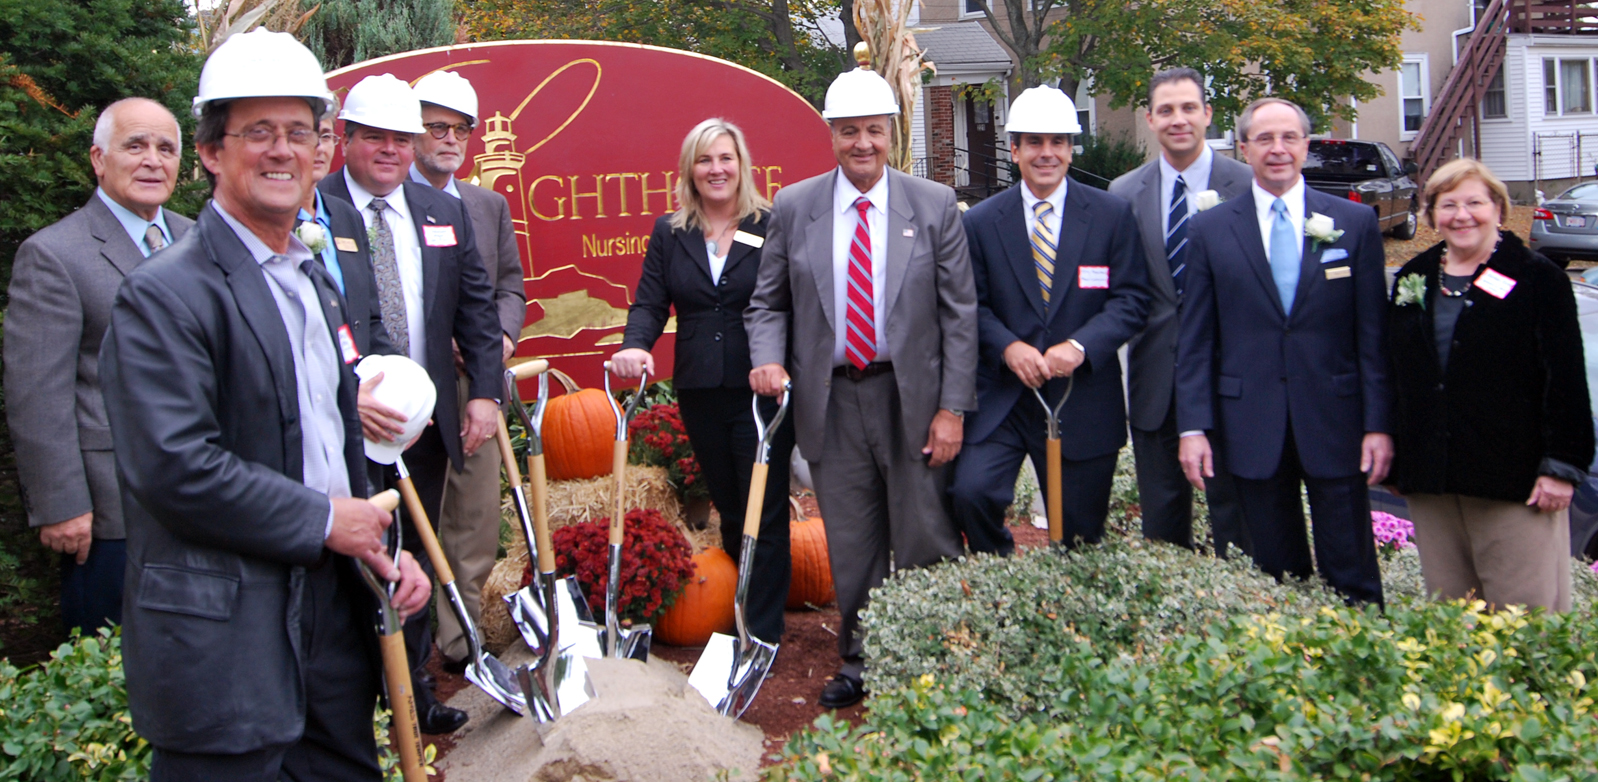 From L to R:  City Councillor Anthony Zambuto; Fred Sannella, School Committee; Michele Figucia, Nursing Home Administrator; City of Revere Mayor Dan Rizzo; Roger Marks; Lisa Benevento; Councillor John Correggio; Nauset Construction President, Anthony Papantonis; Senator Anthony Petruccelli; Guardian Foundation, Inc., President and CEO, Gregory Grove; and Barbara Bishop, Representing Massachusetts Speaker of the House Robert DeLeo.